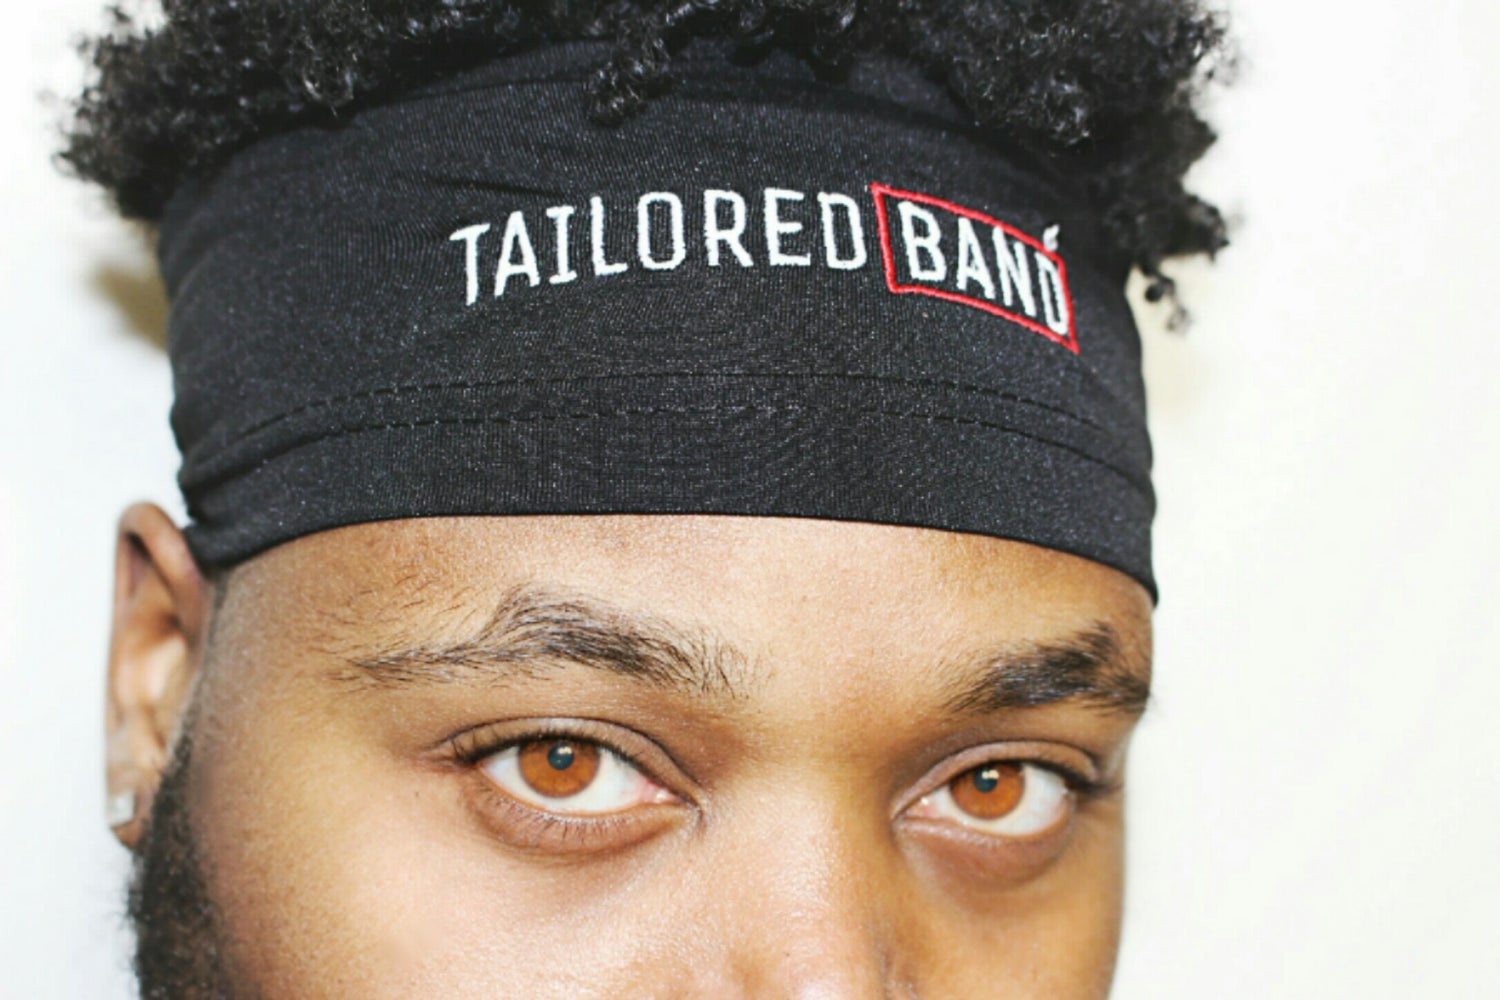 Image of TailoredBand